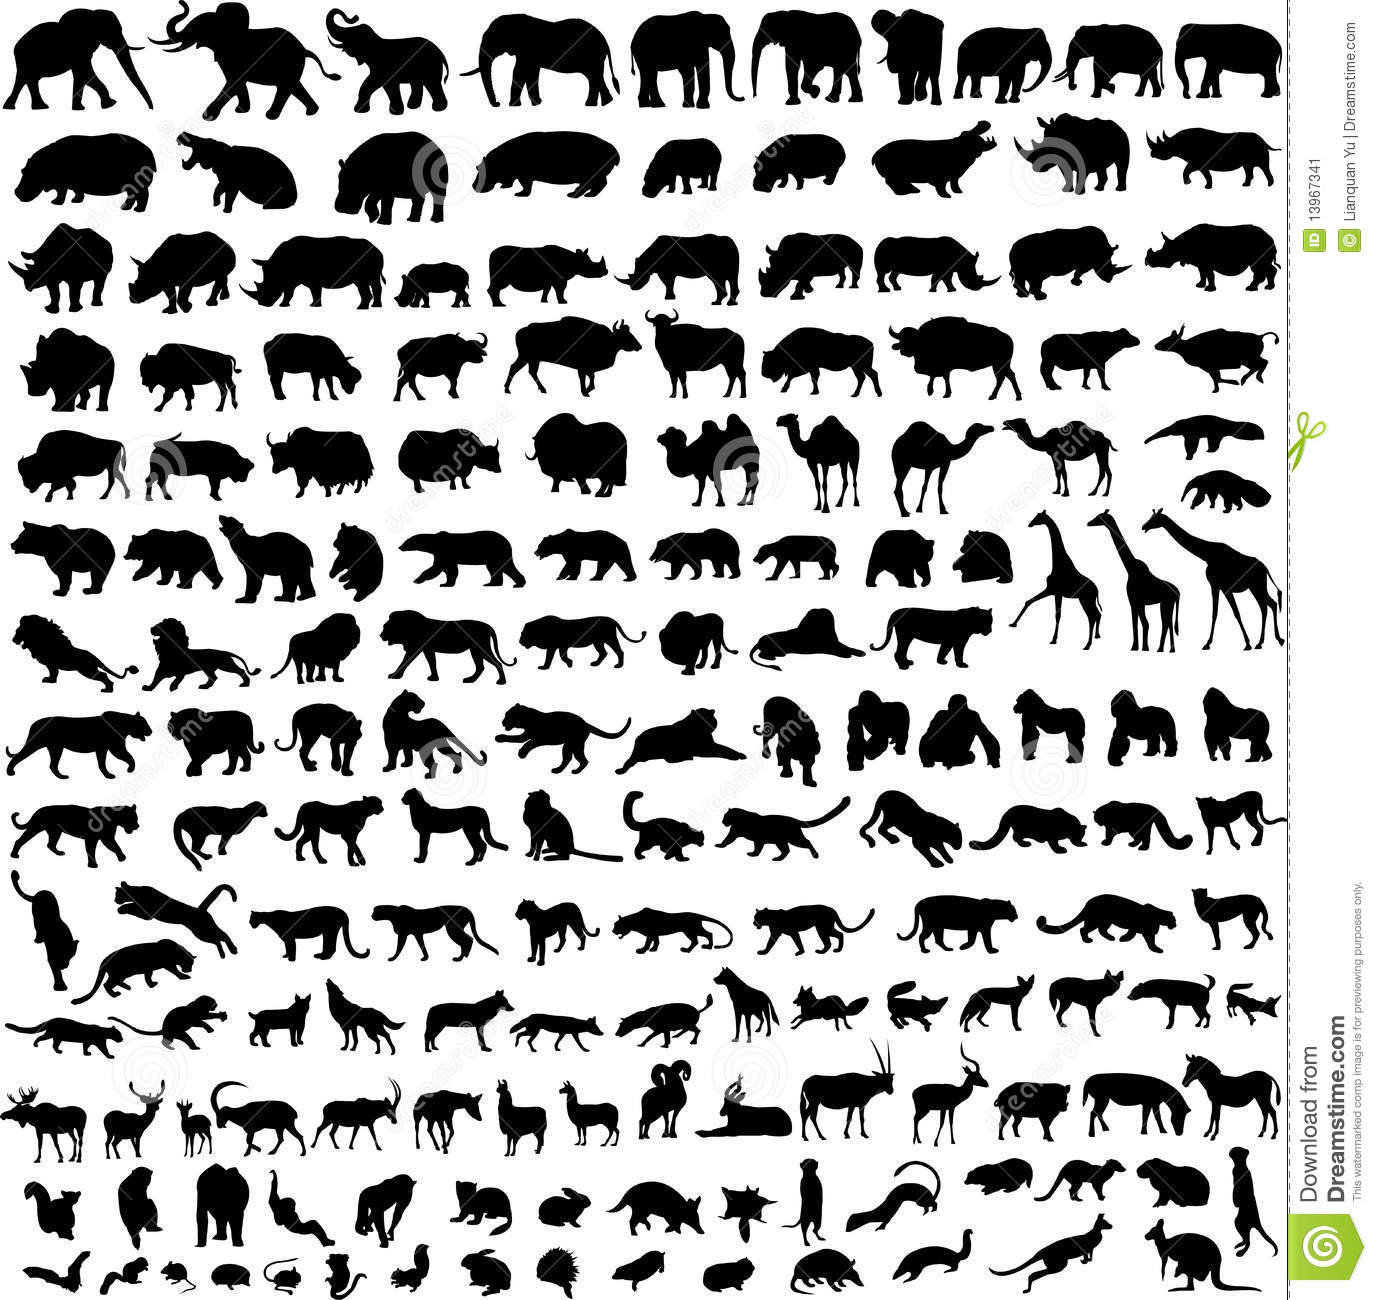 Snapshots of the most comprehensive collection of mammals.